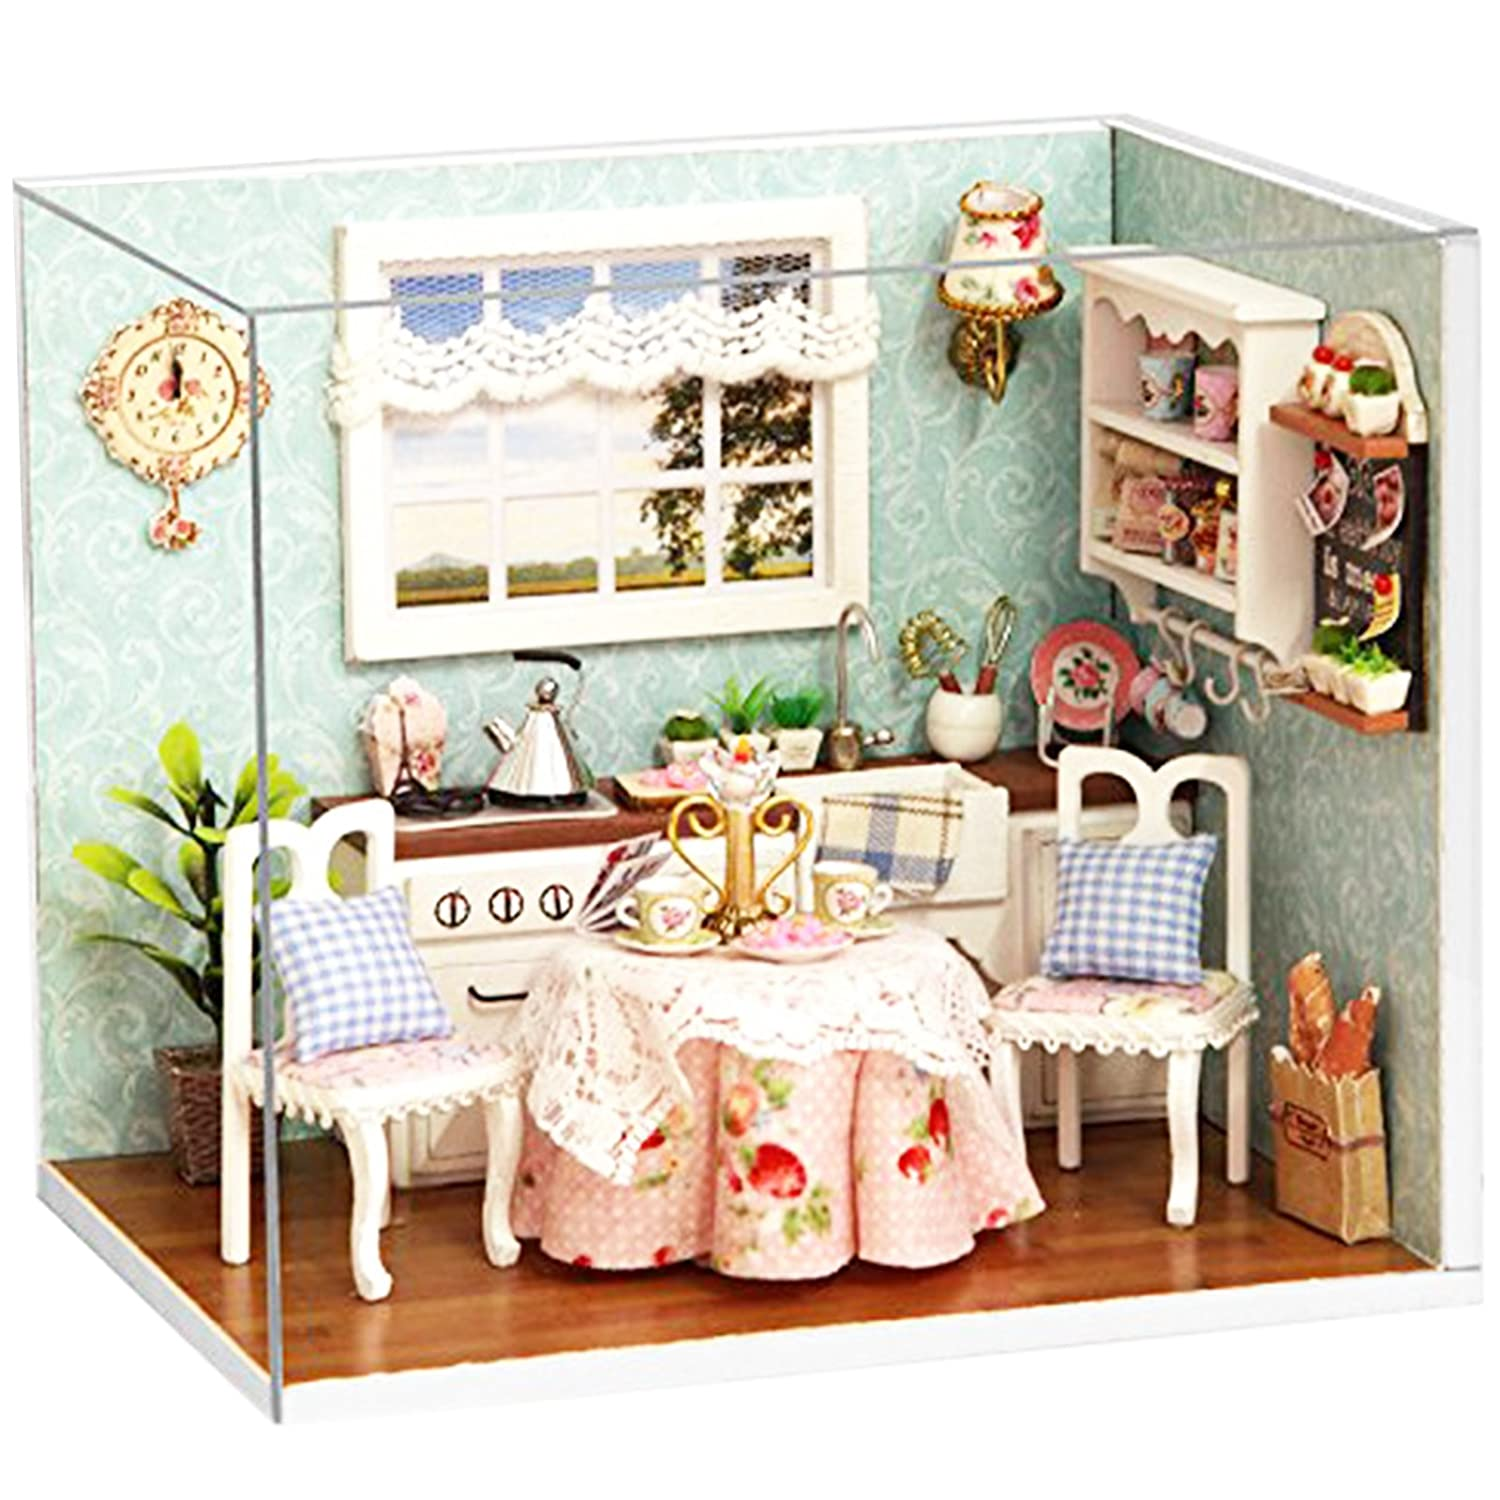 Ogrmar Wooden Dollhouse Miniatures DIY House Kit With Cover and Led Light-Happiness Kitchen